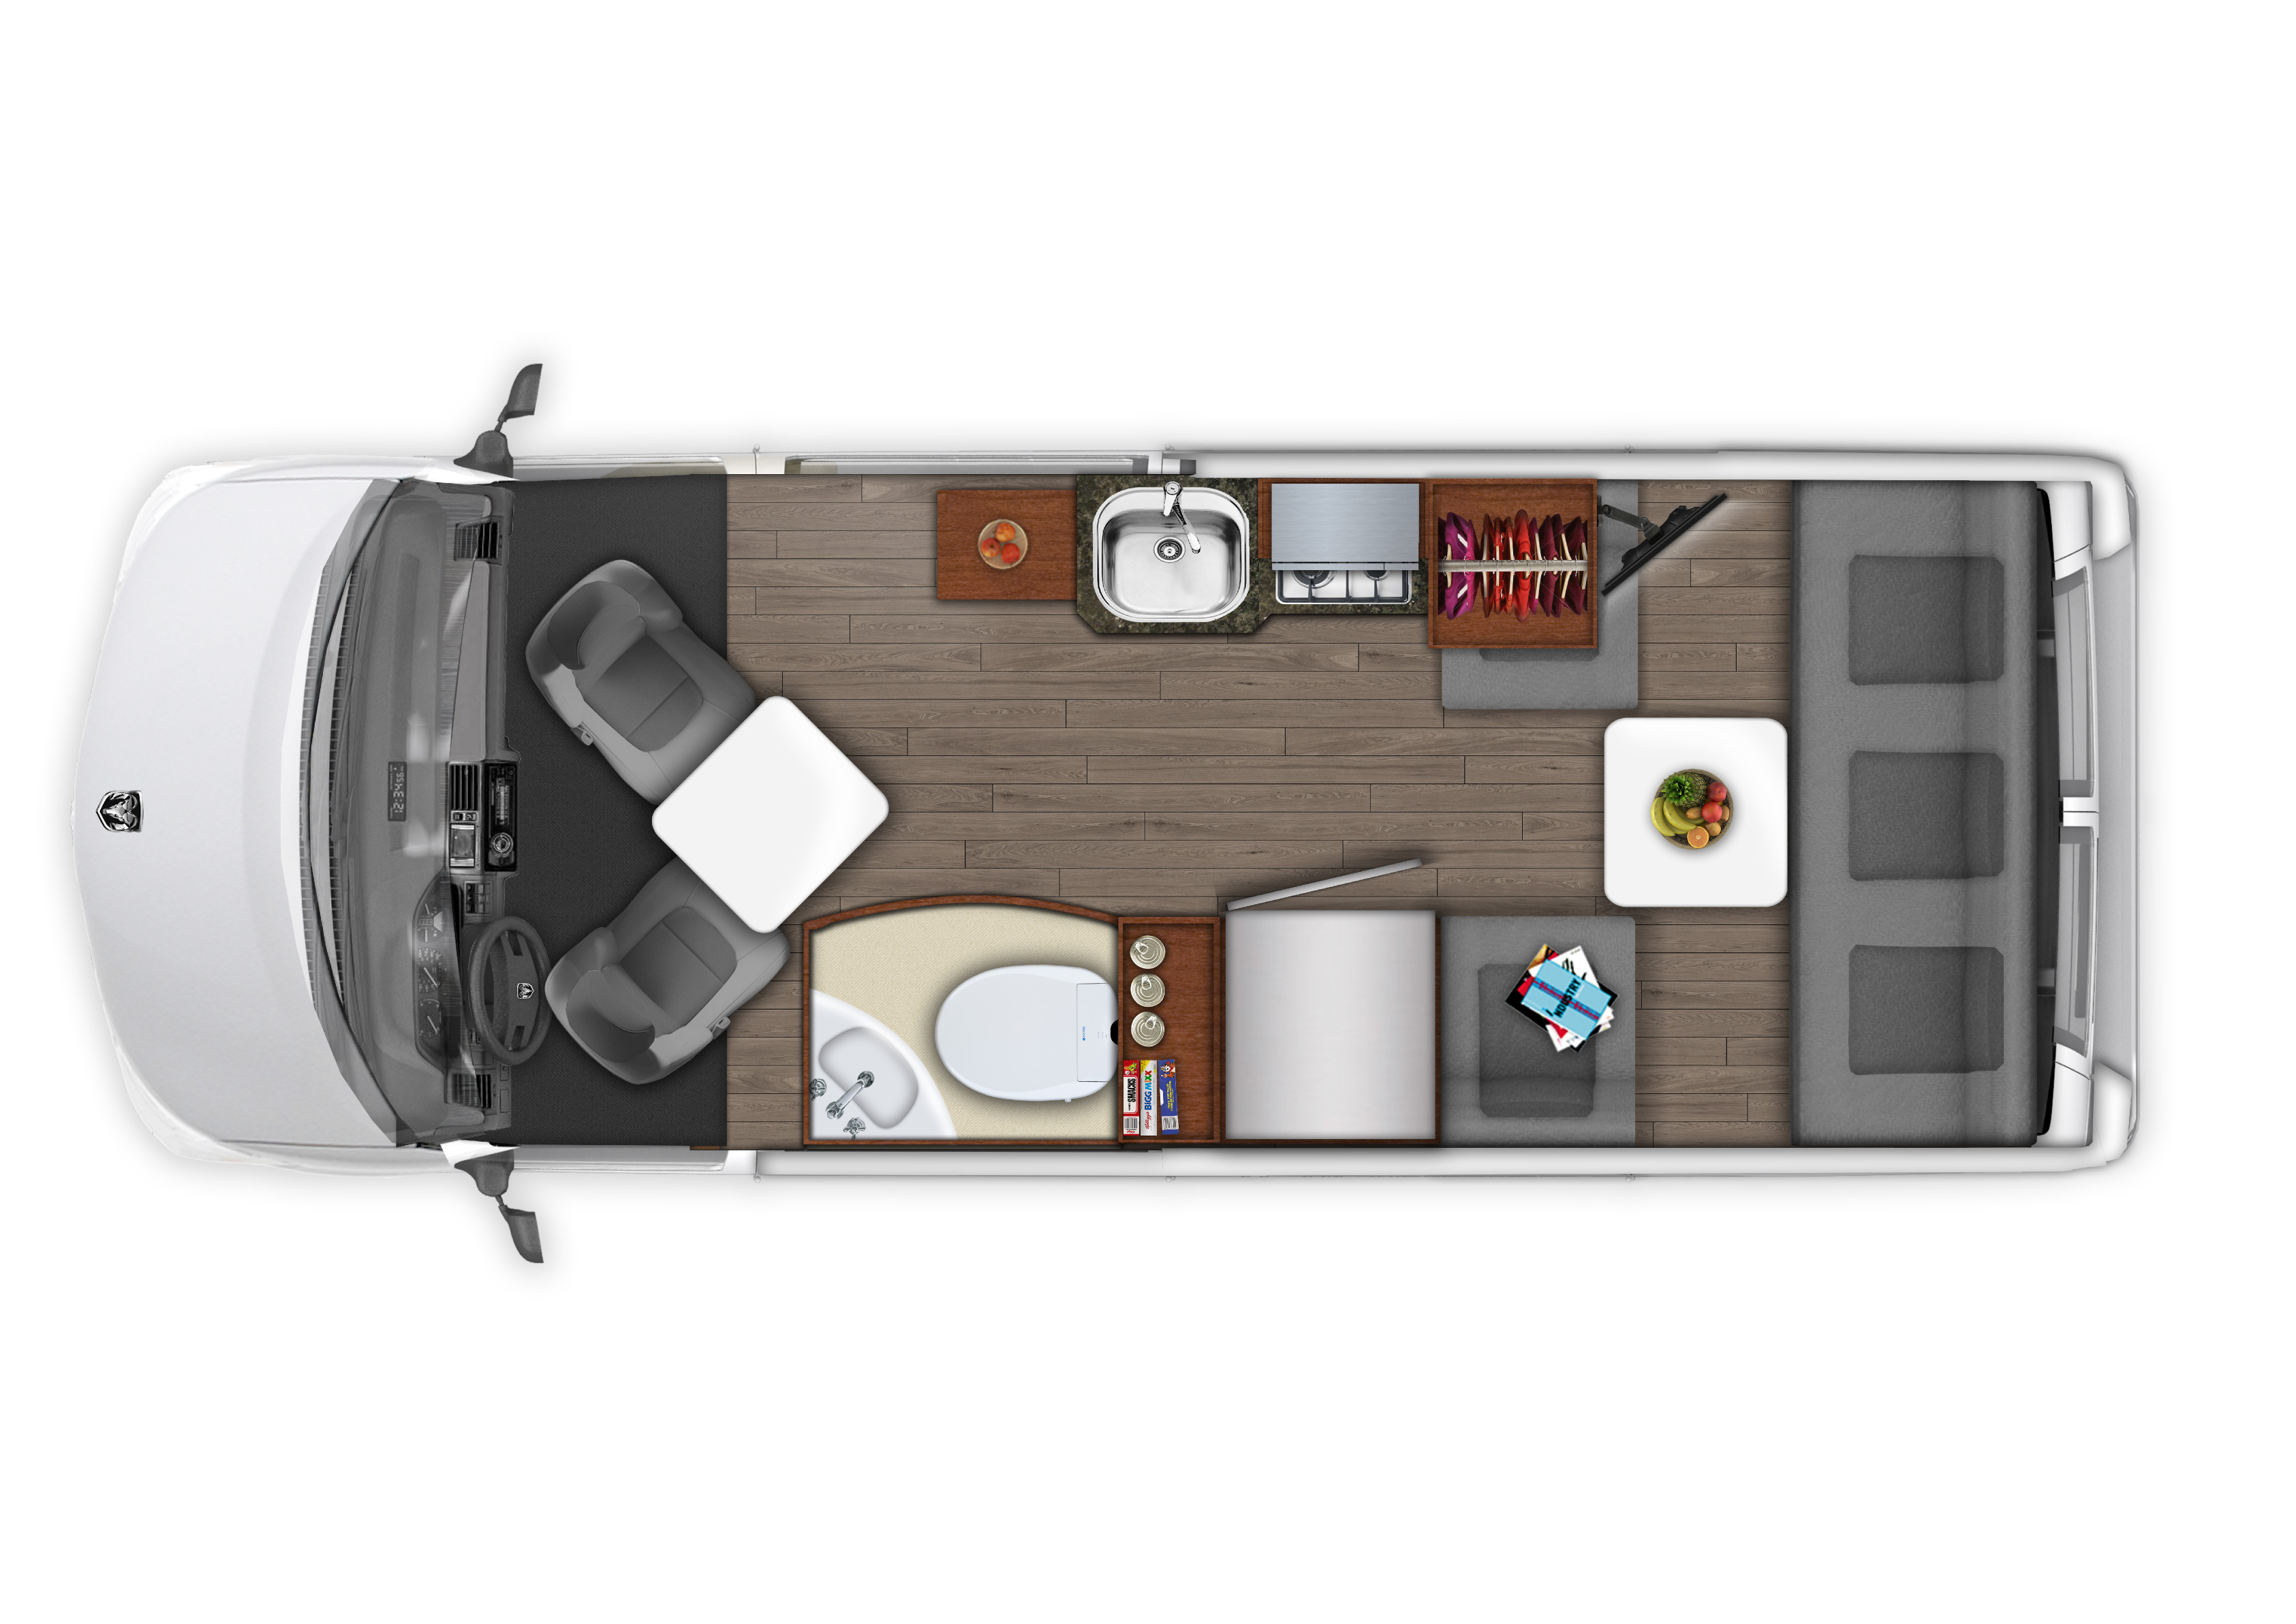 2018 Roadtrek Simplicity 3500 Floor Plan